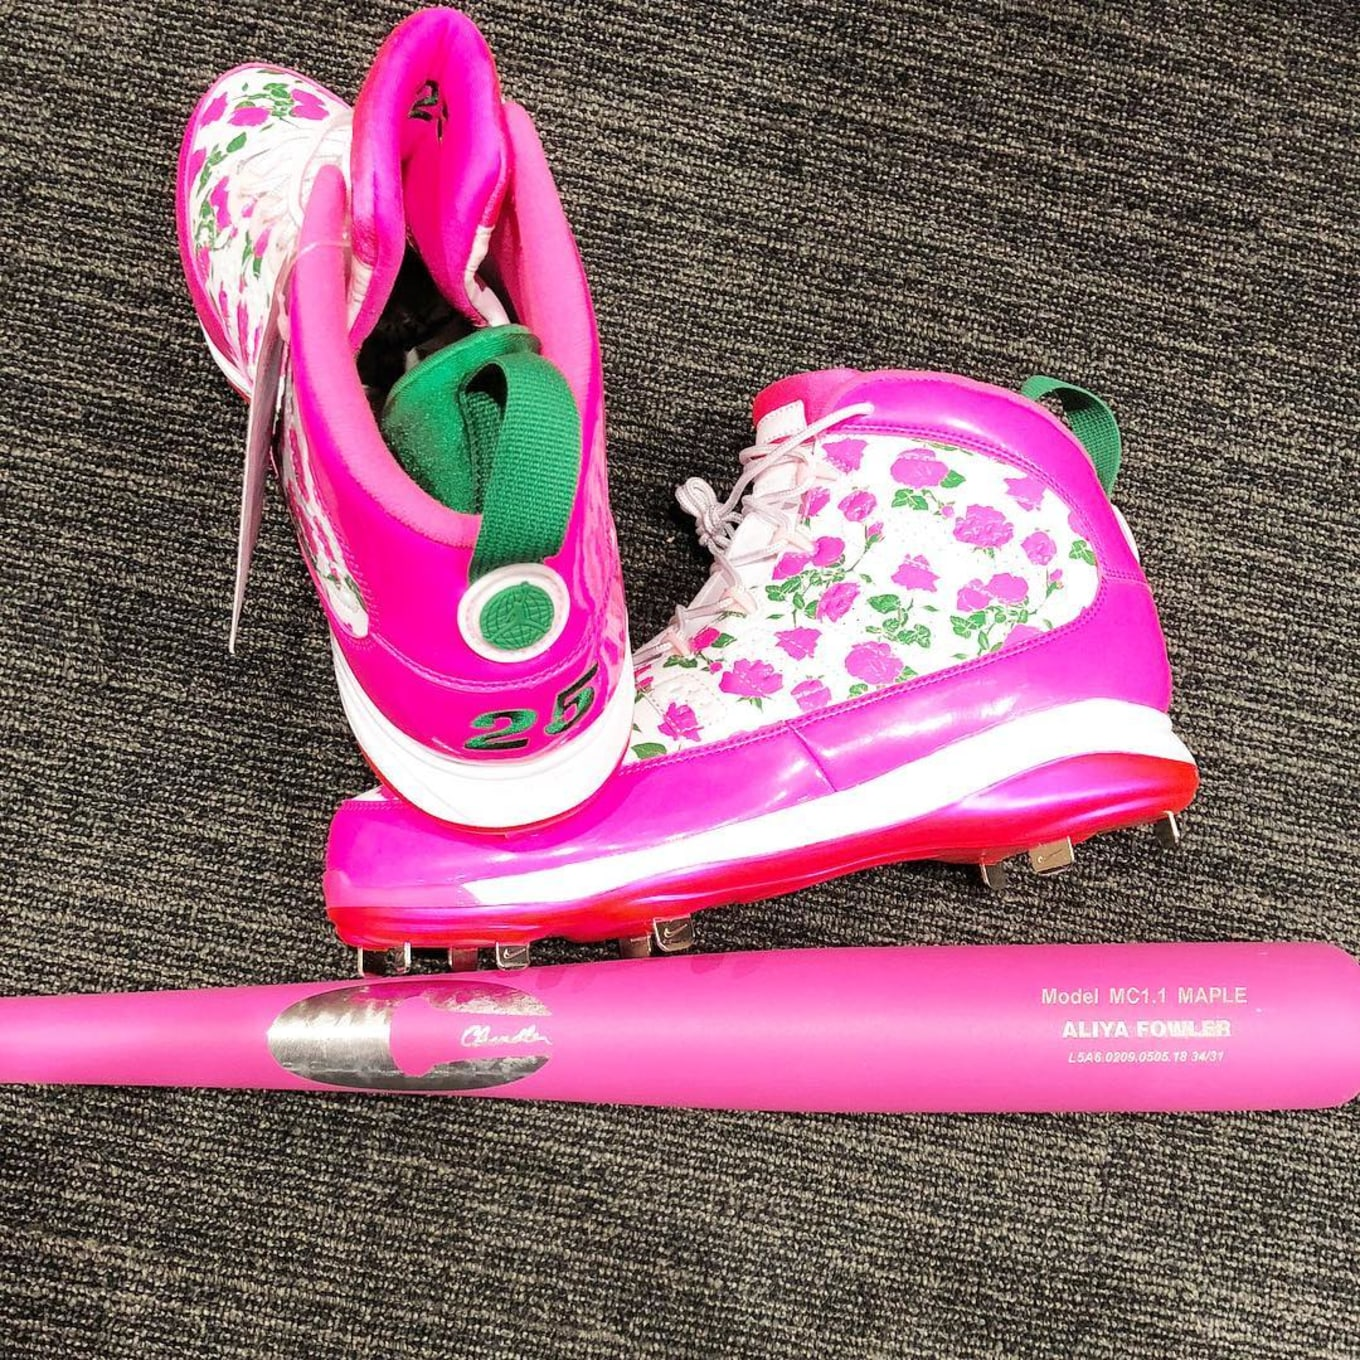 104a3e227dc ... Cleats for Mother s Day. Personalized Air Jordan 9s to hit fields today.